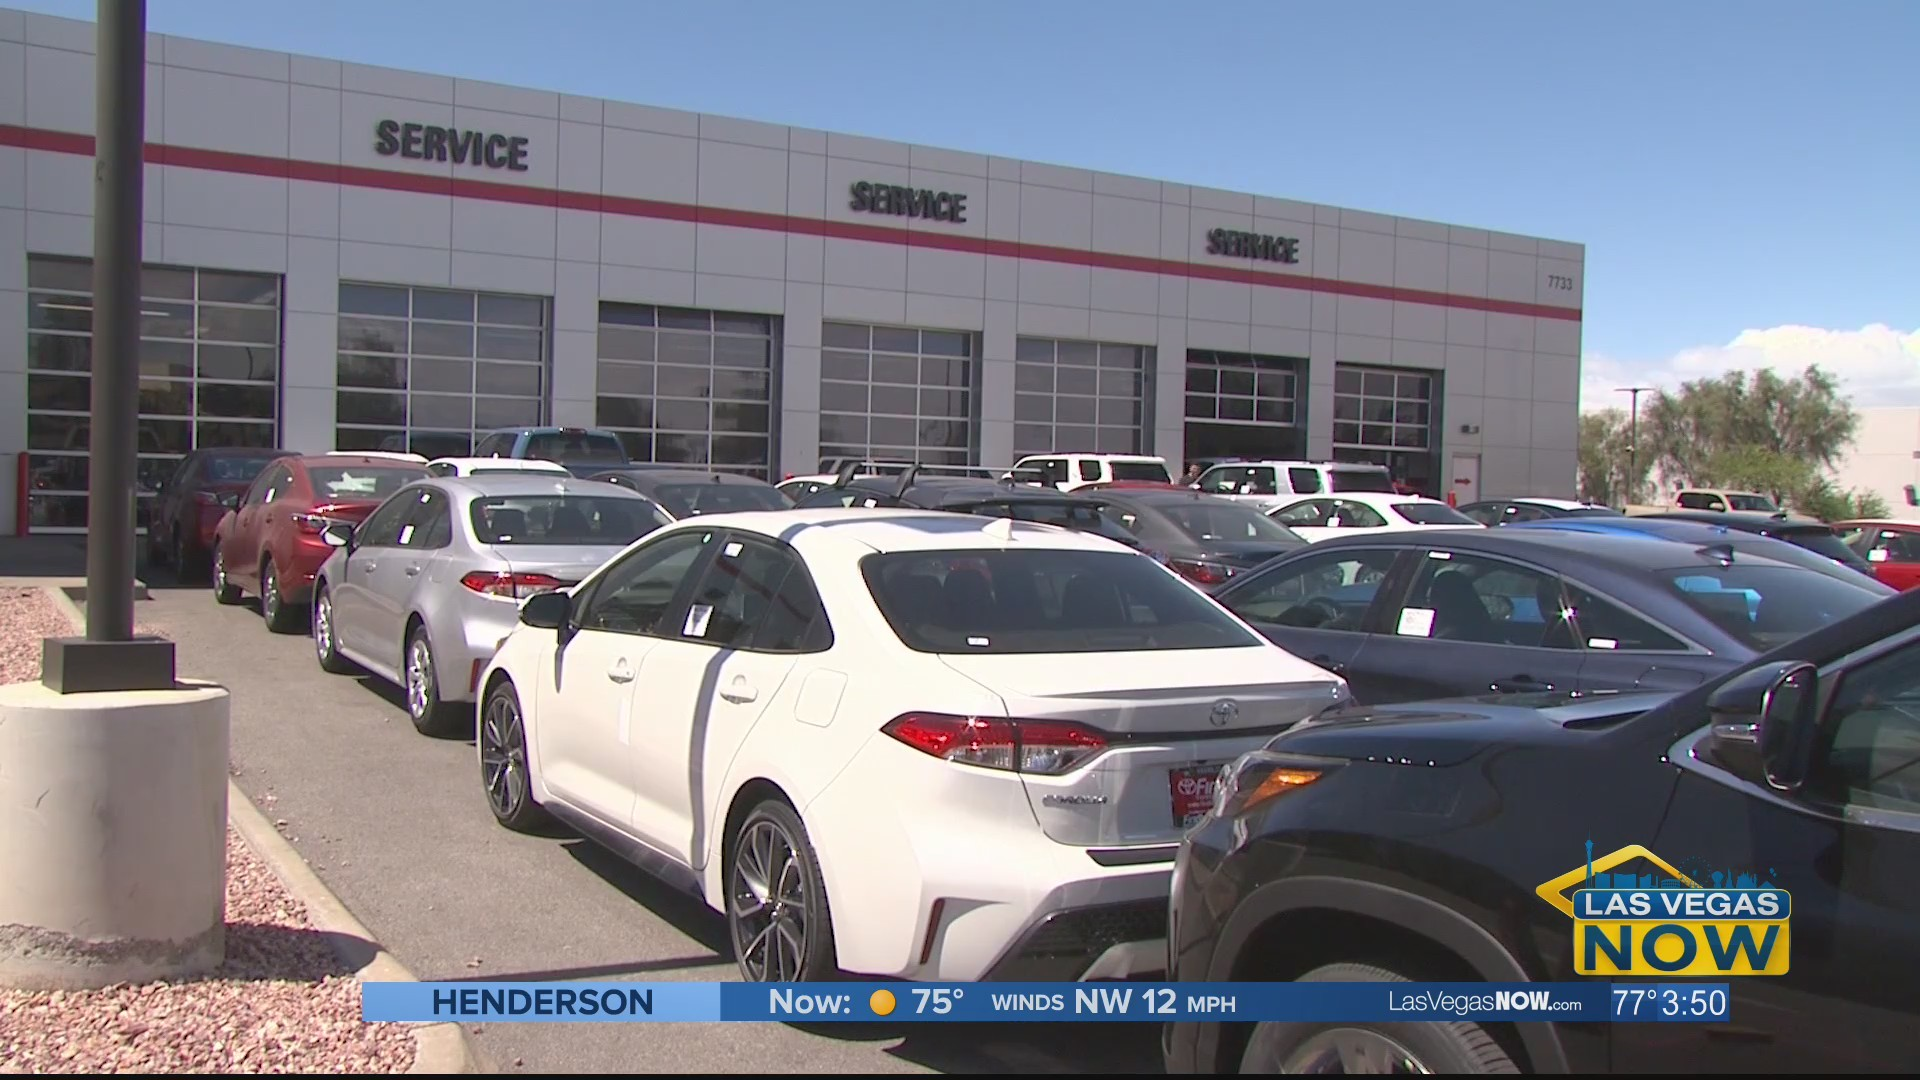 Findlay Toyota will do anything to service your car